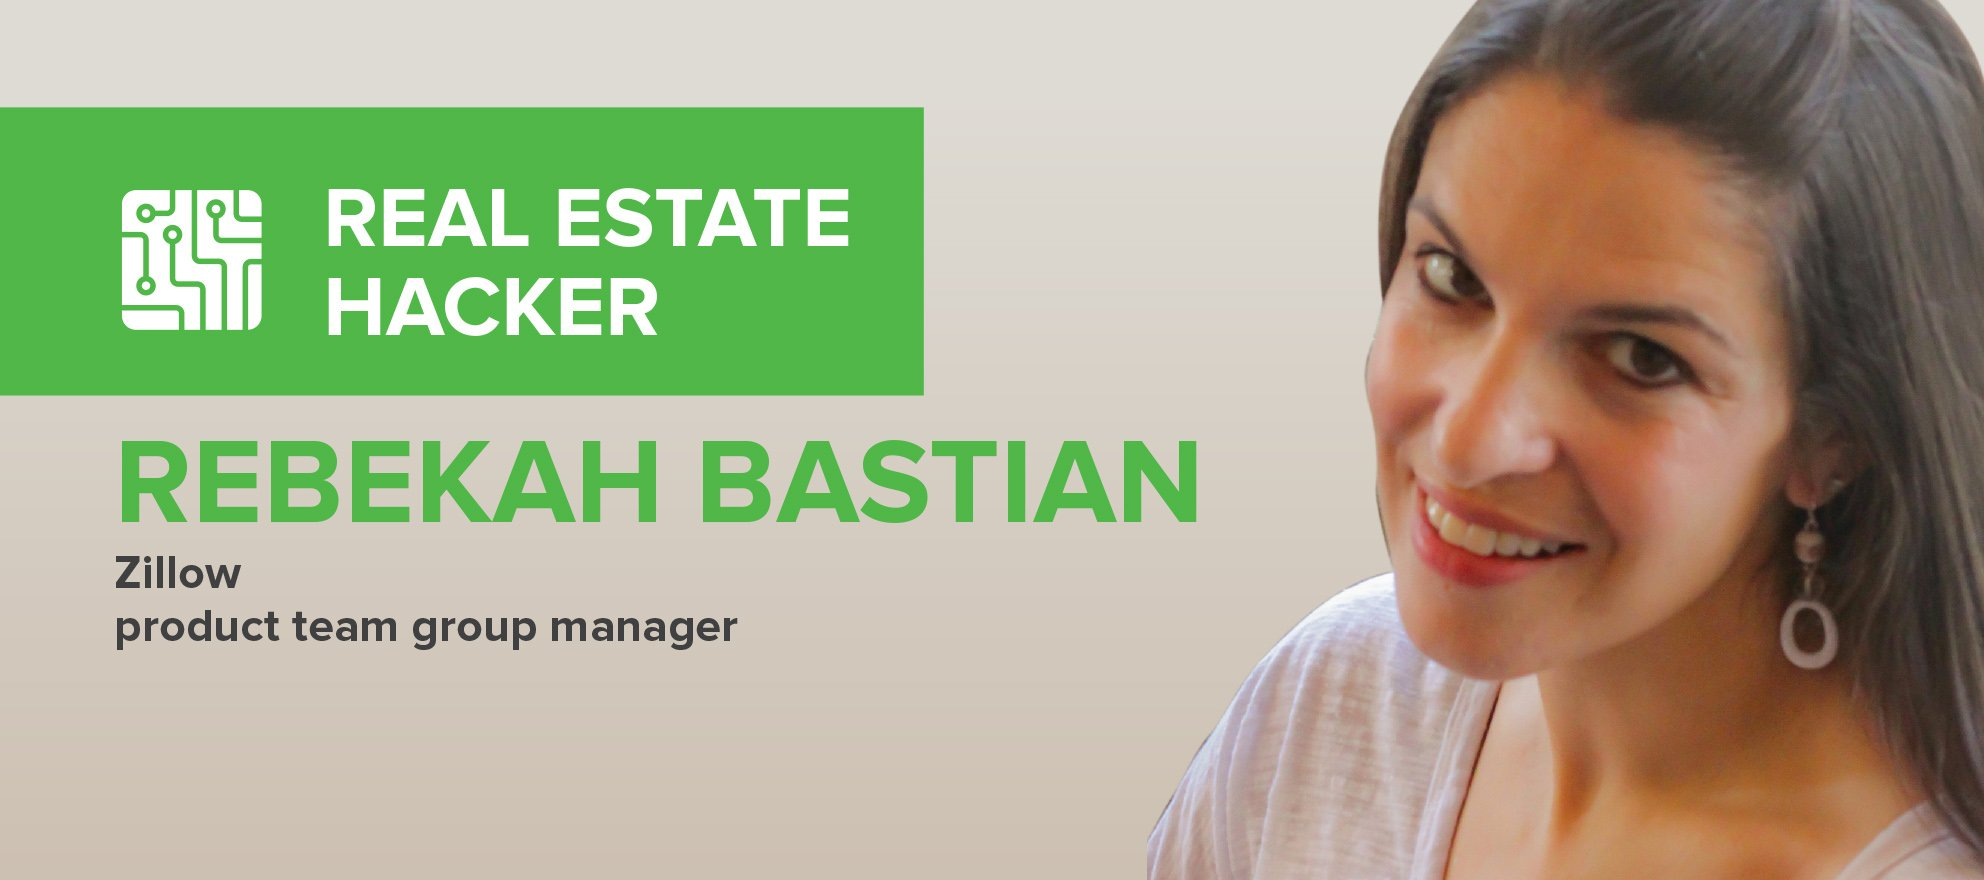 Rebekah Bastian: 'I want to make sure great agents get all the business'